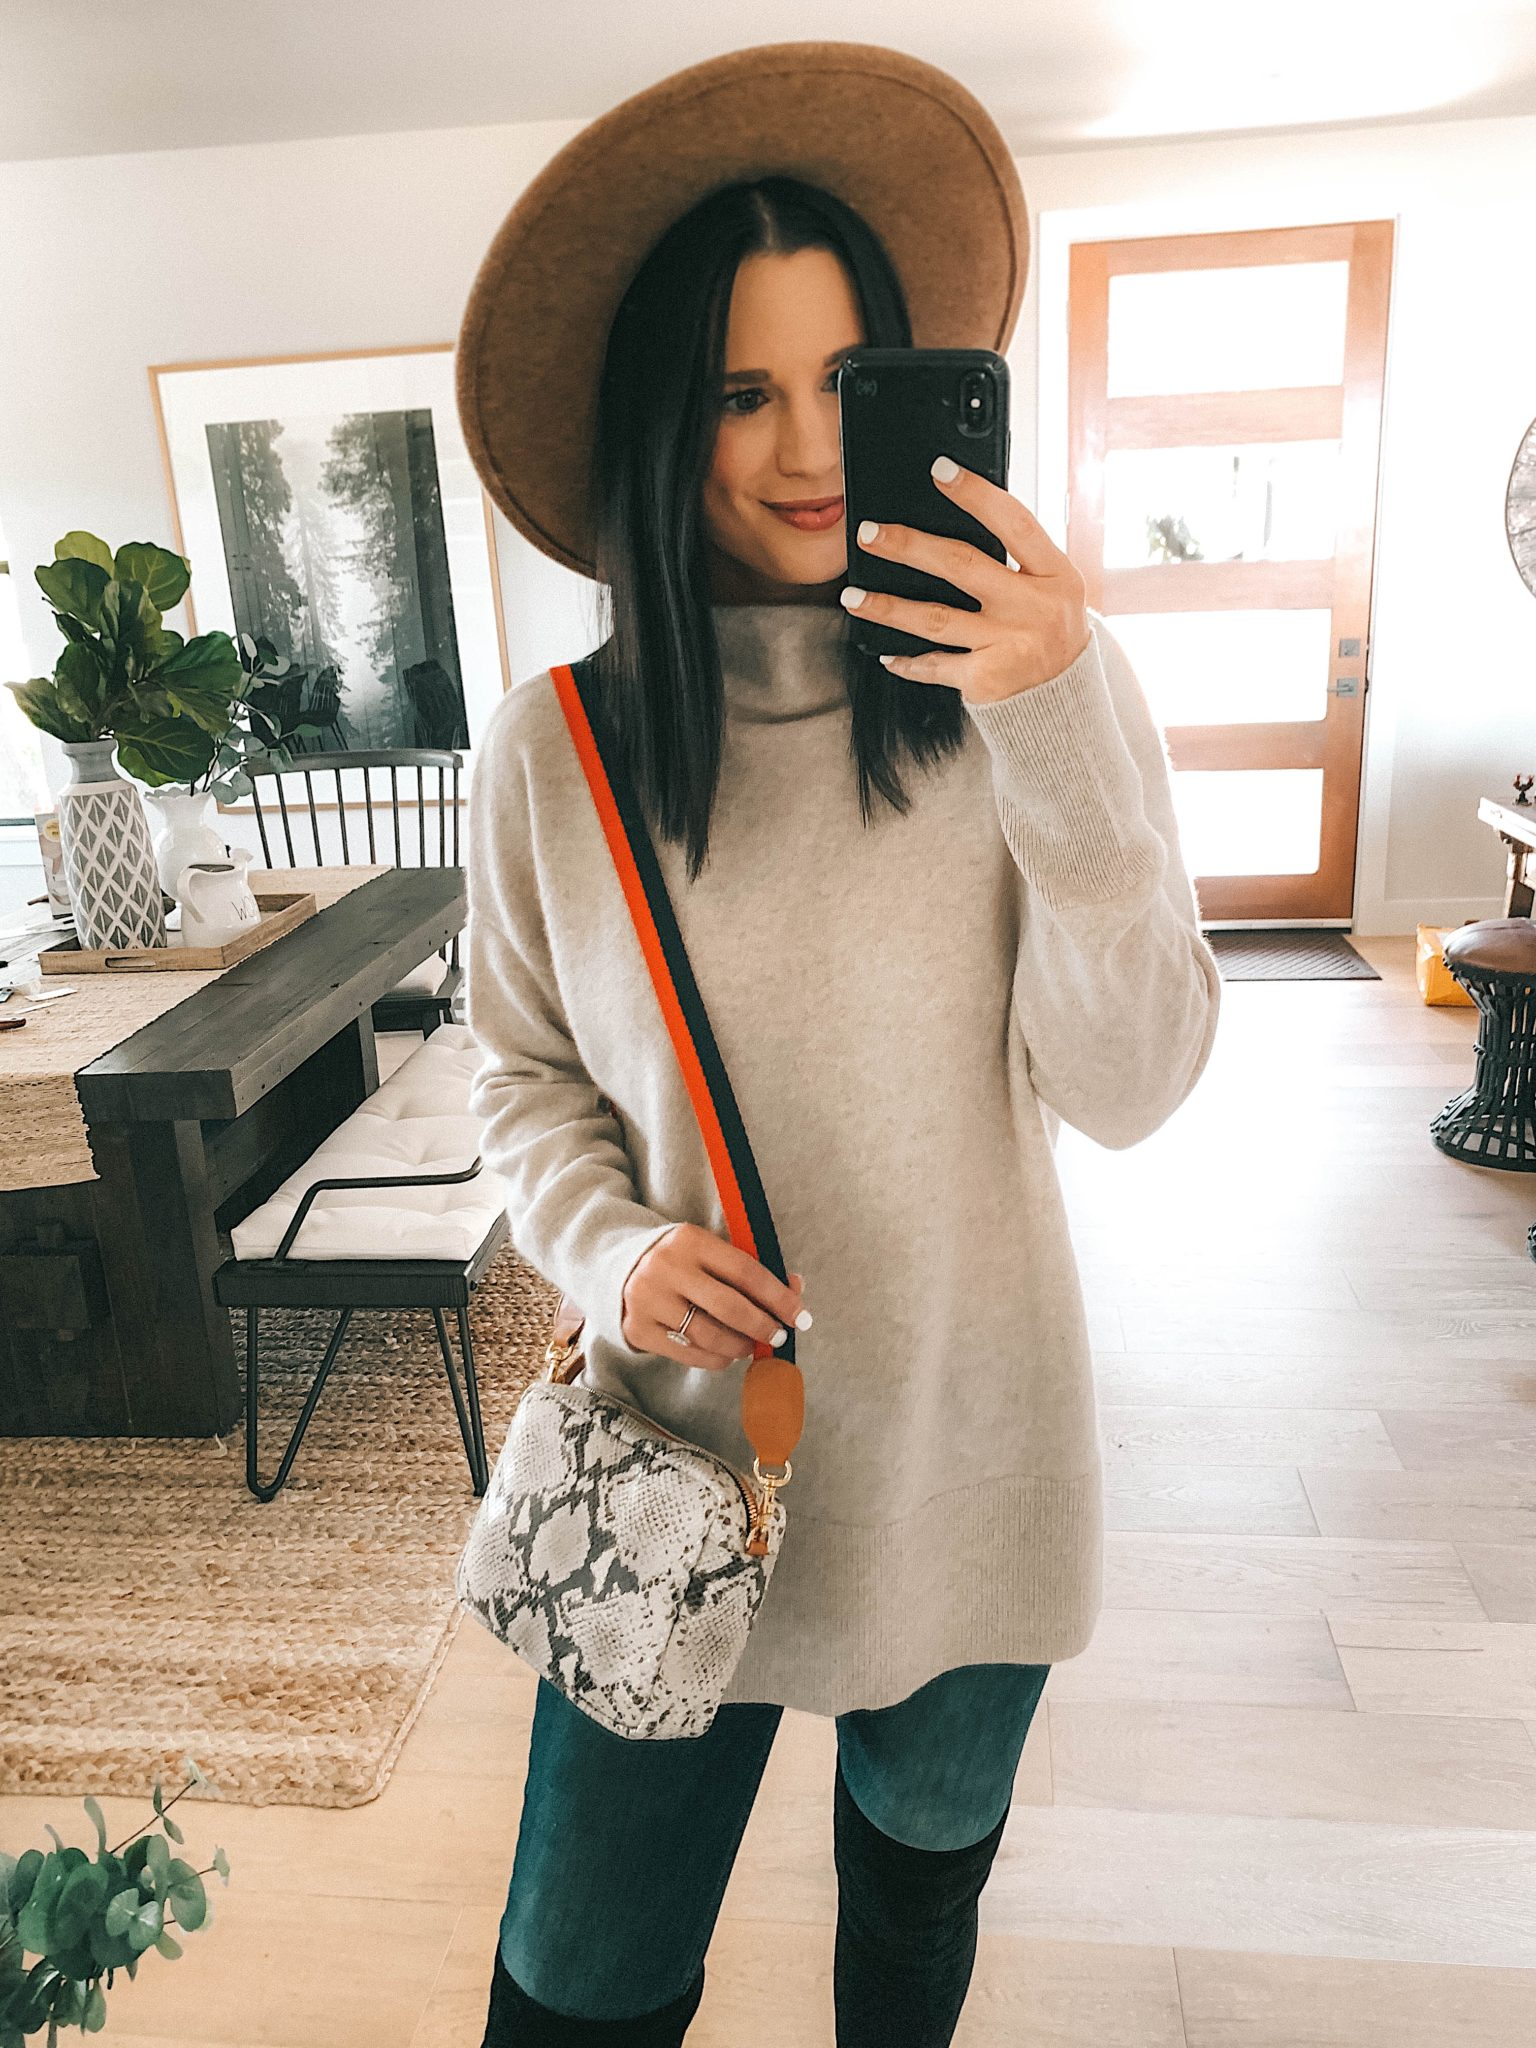 Create a Capsule Wardrobe with Nordstrom Anniversary Sale Pieces by popular Austin fashion blog, Dressed to Kill: image of a woman standing in her house and wearing a Nordstrom Signature Cashmere Sweater and Steve Madden Over the Knee Boots.